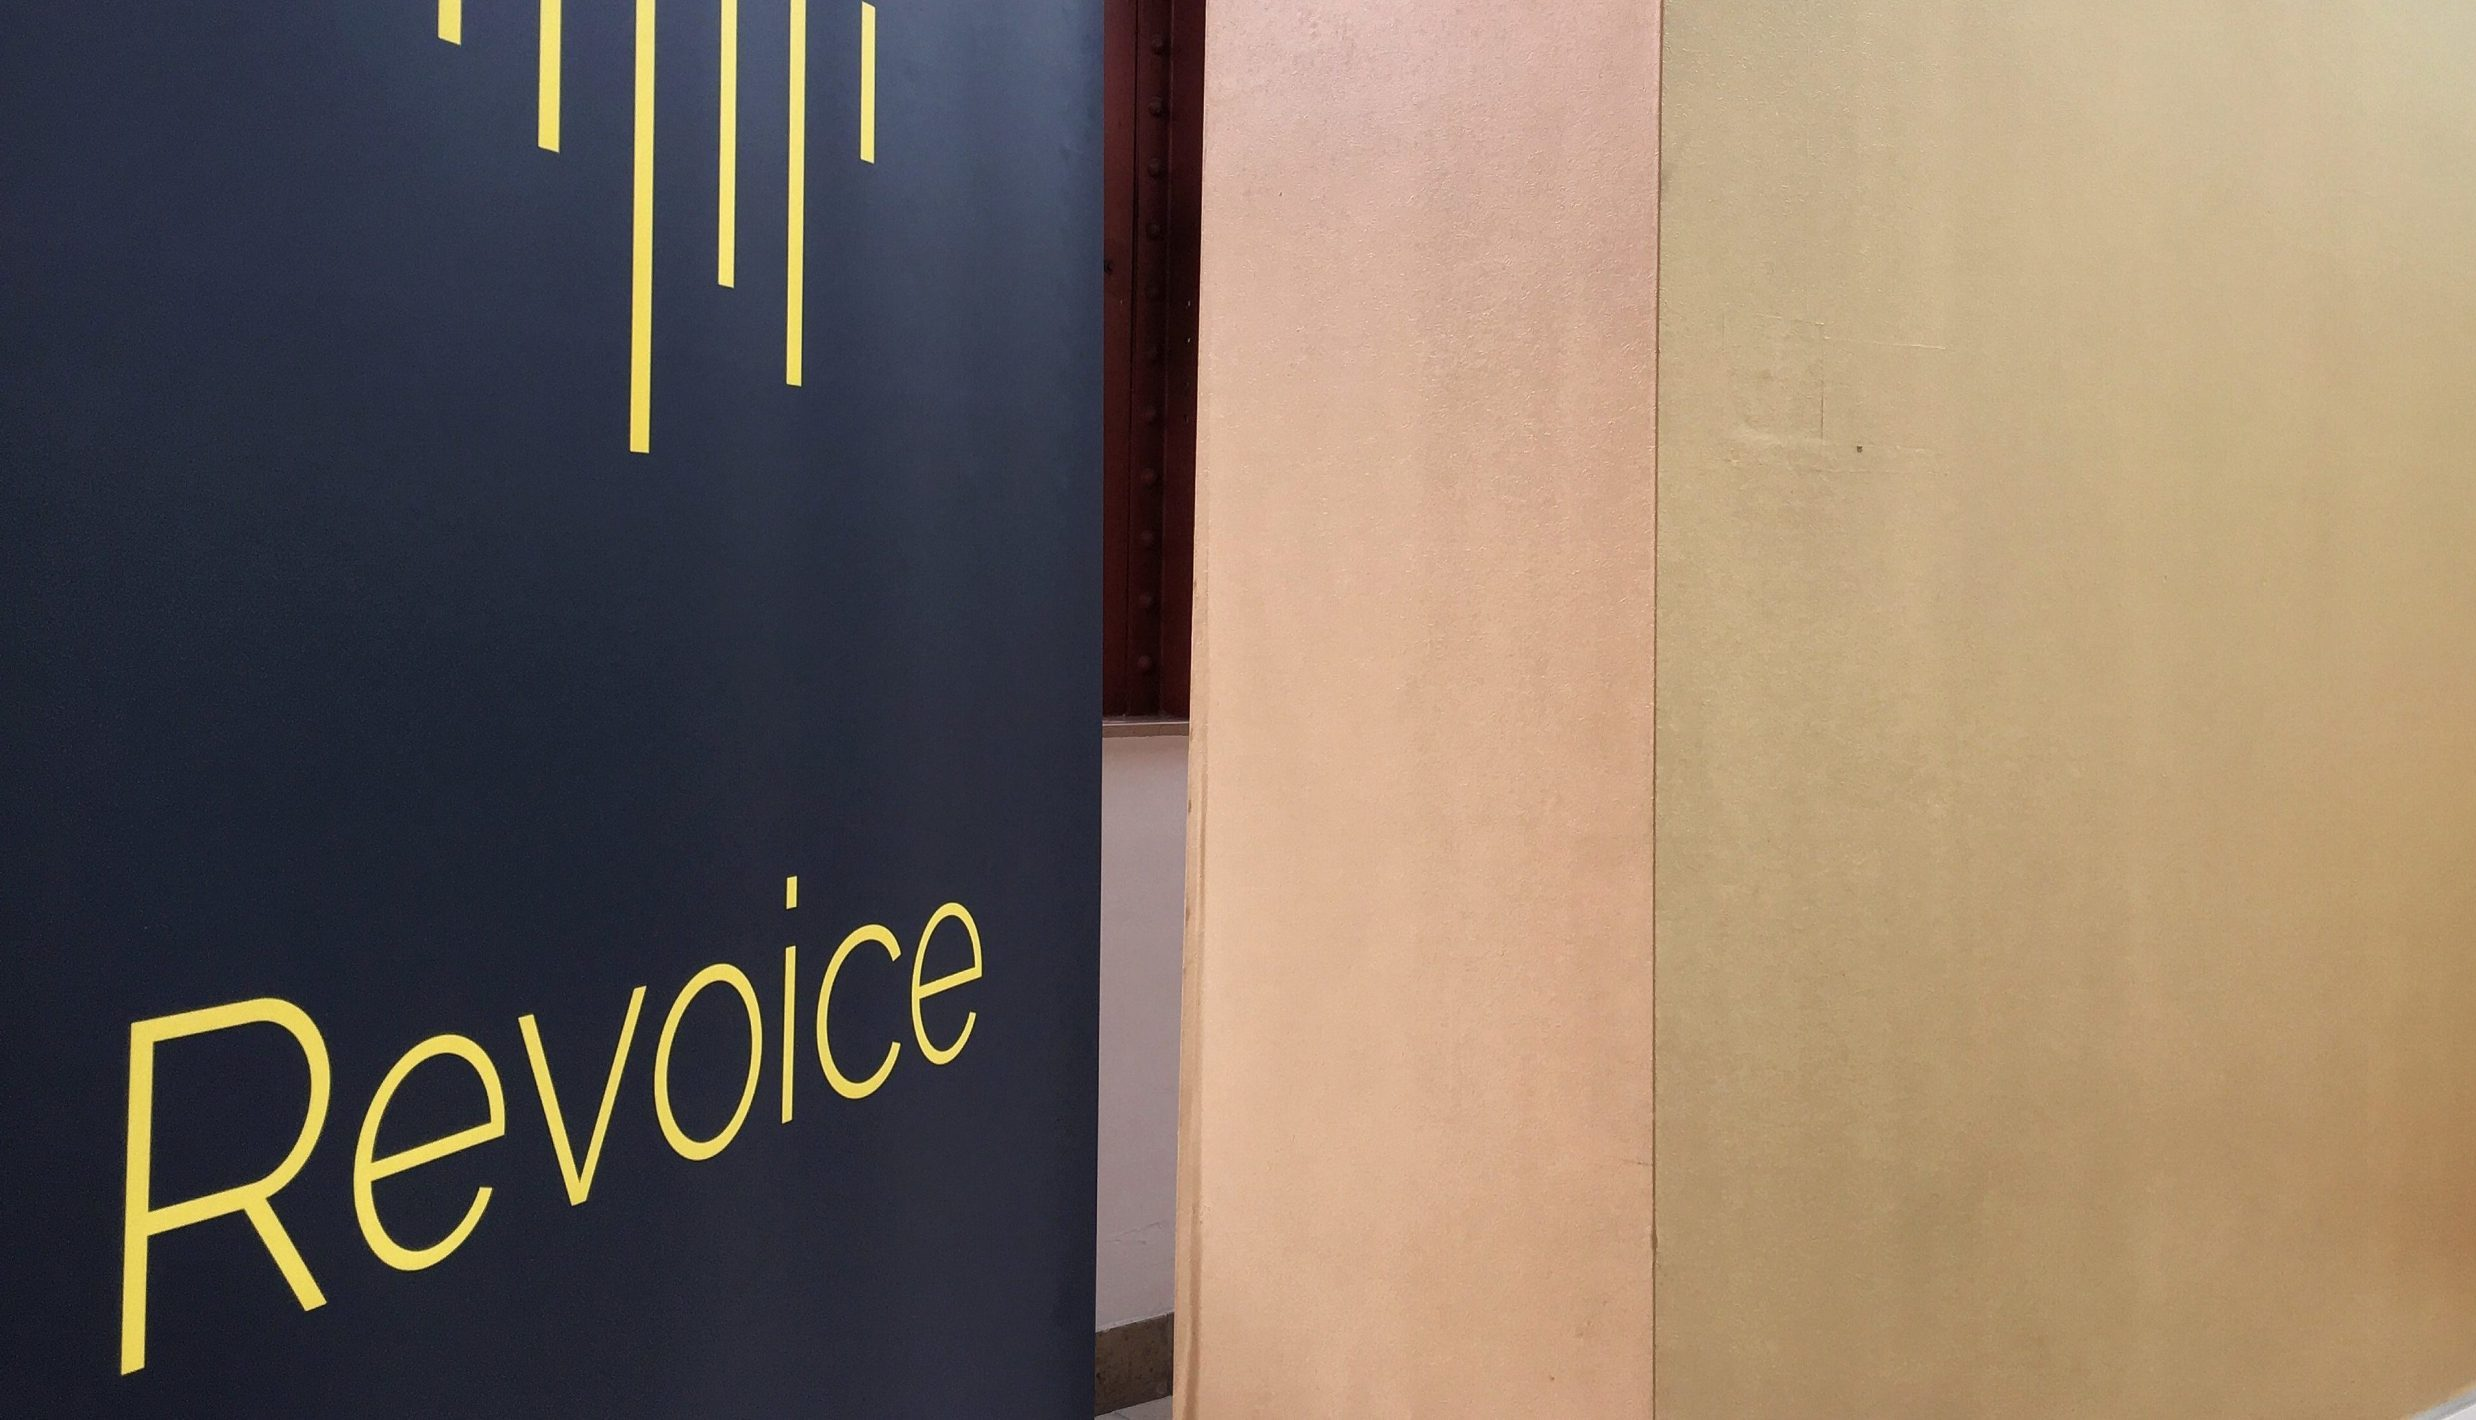 Revoice 2019: So Much to Learn and Love